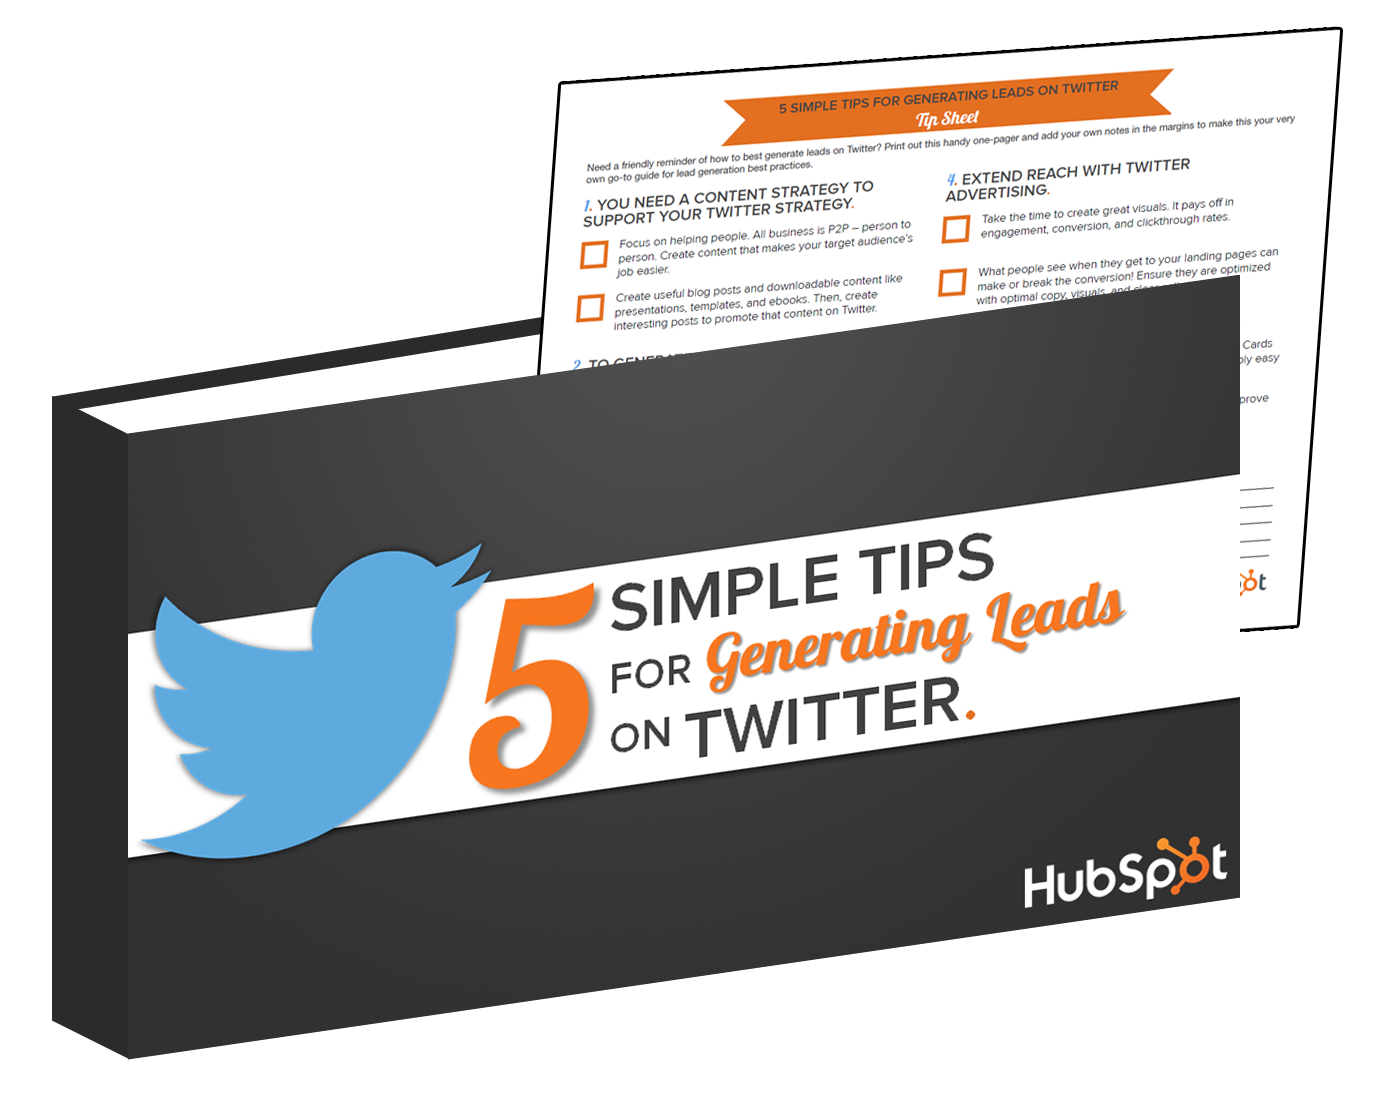 Free Download: 5 Simple Tips for Generating Leads on Twitter